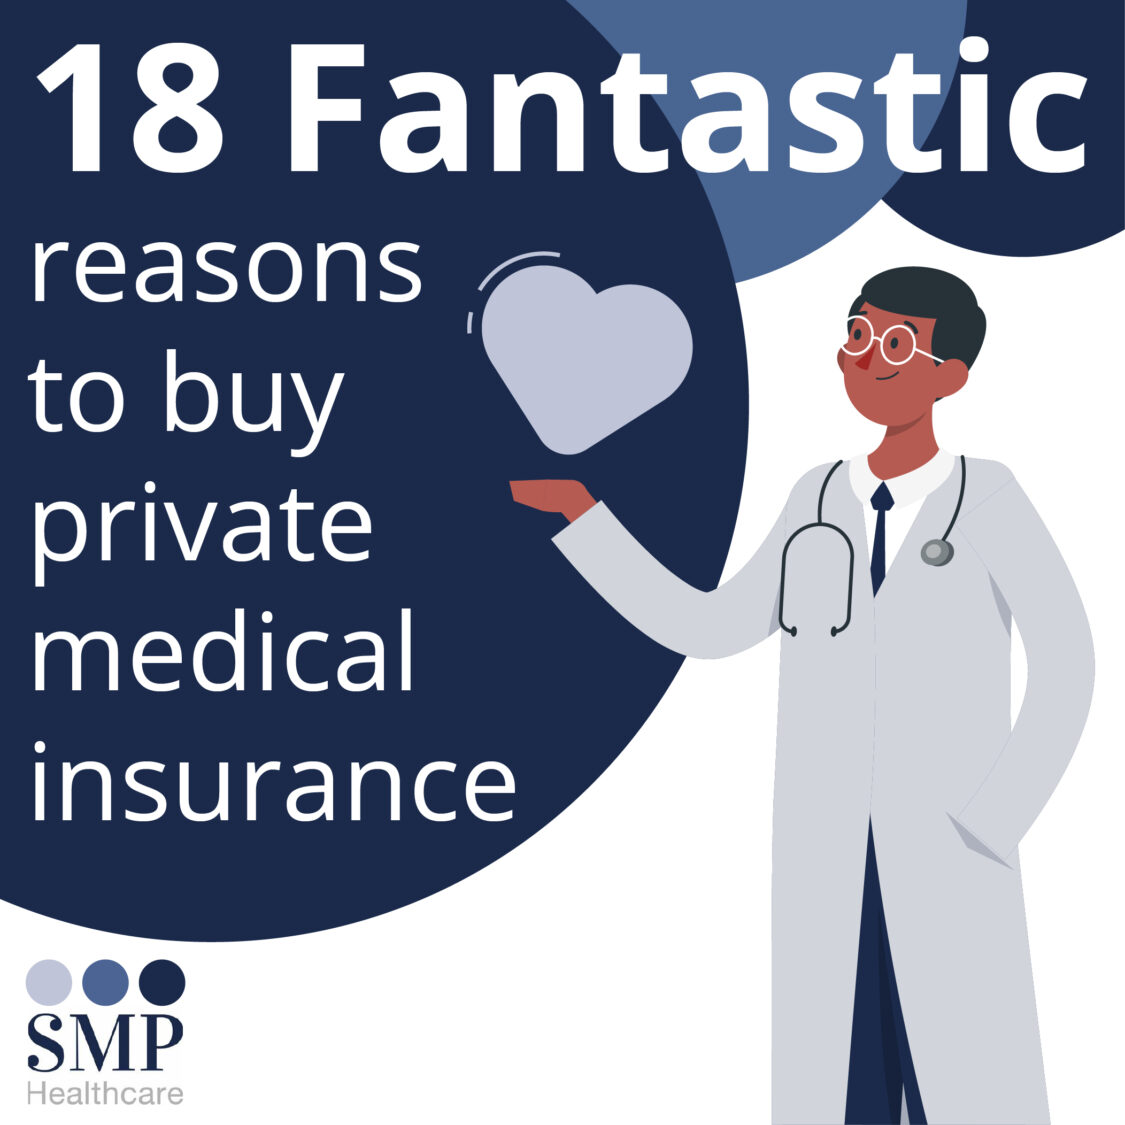 Private medical insurance; 18 fantastic reasons to buy it